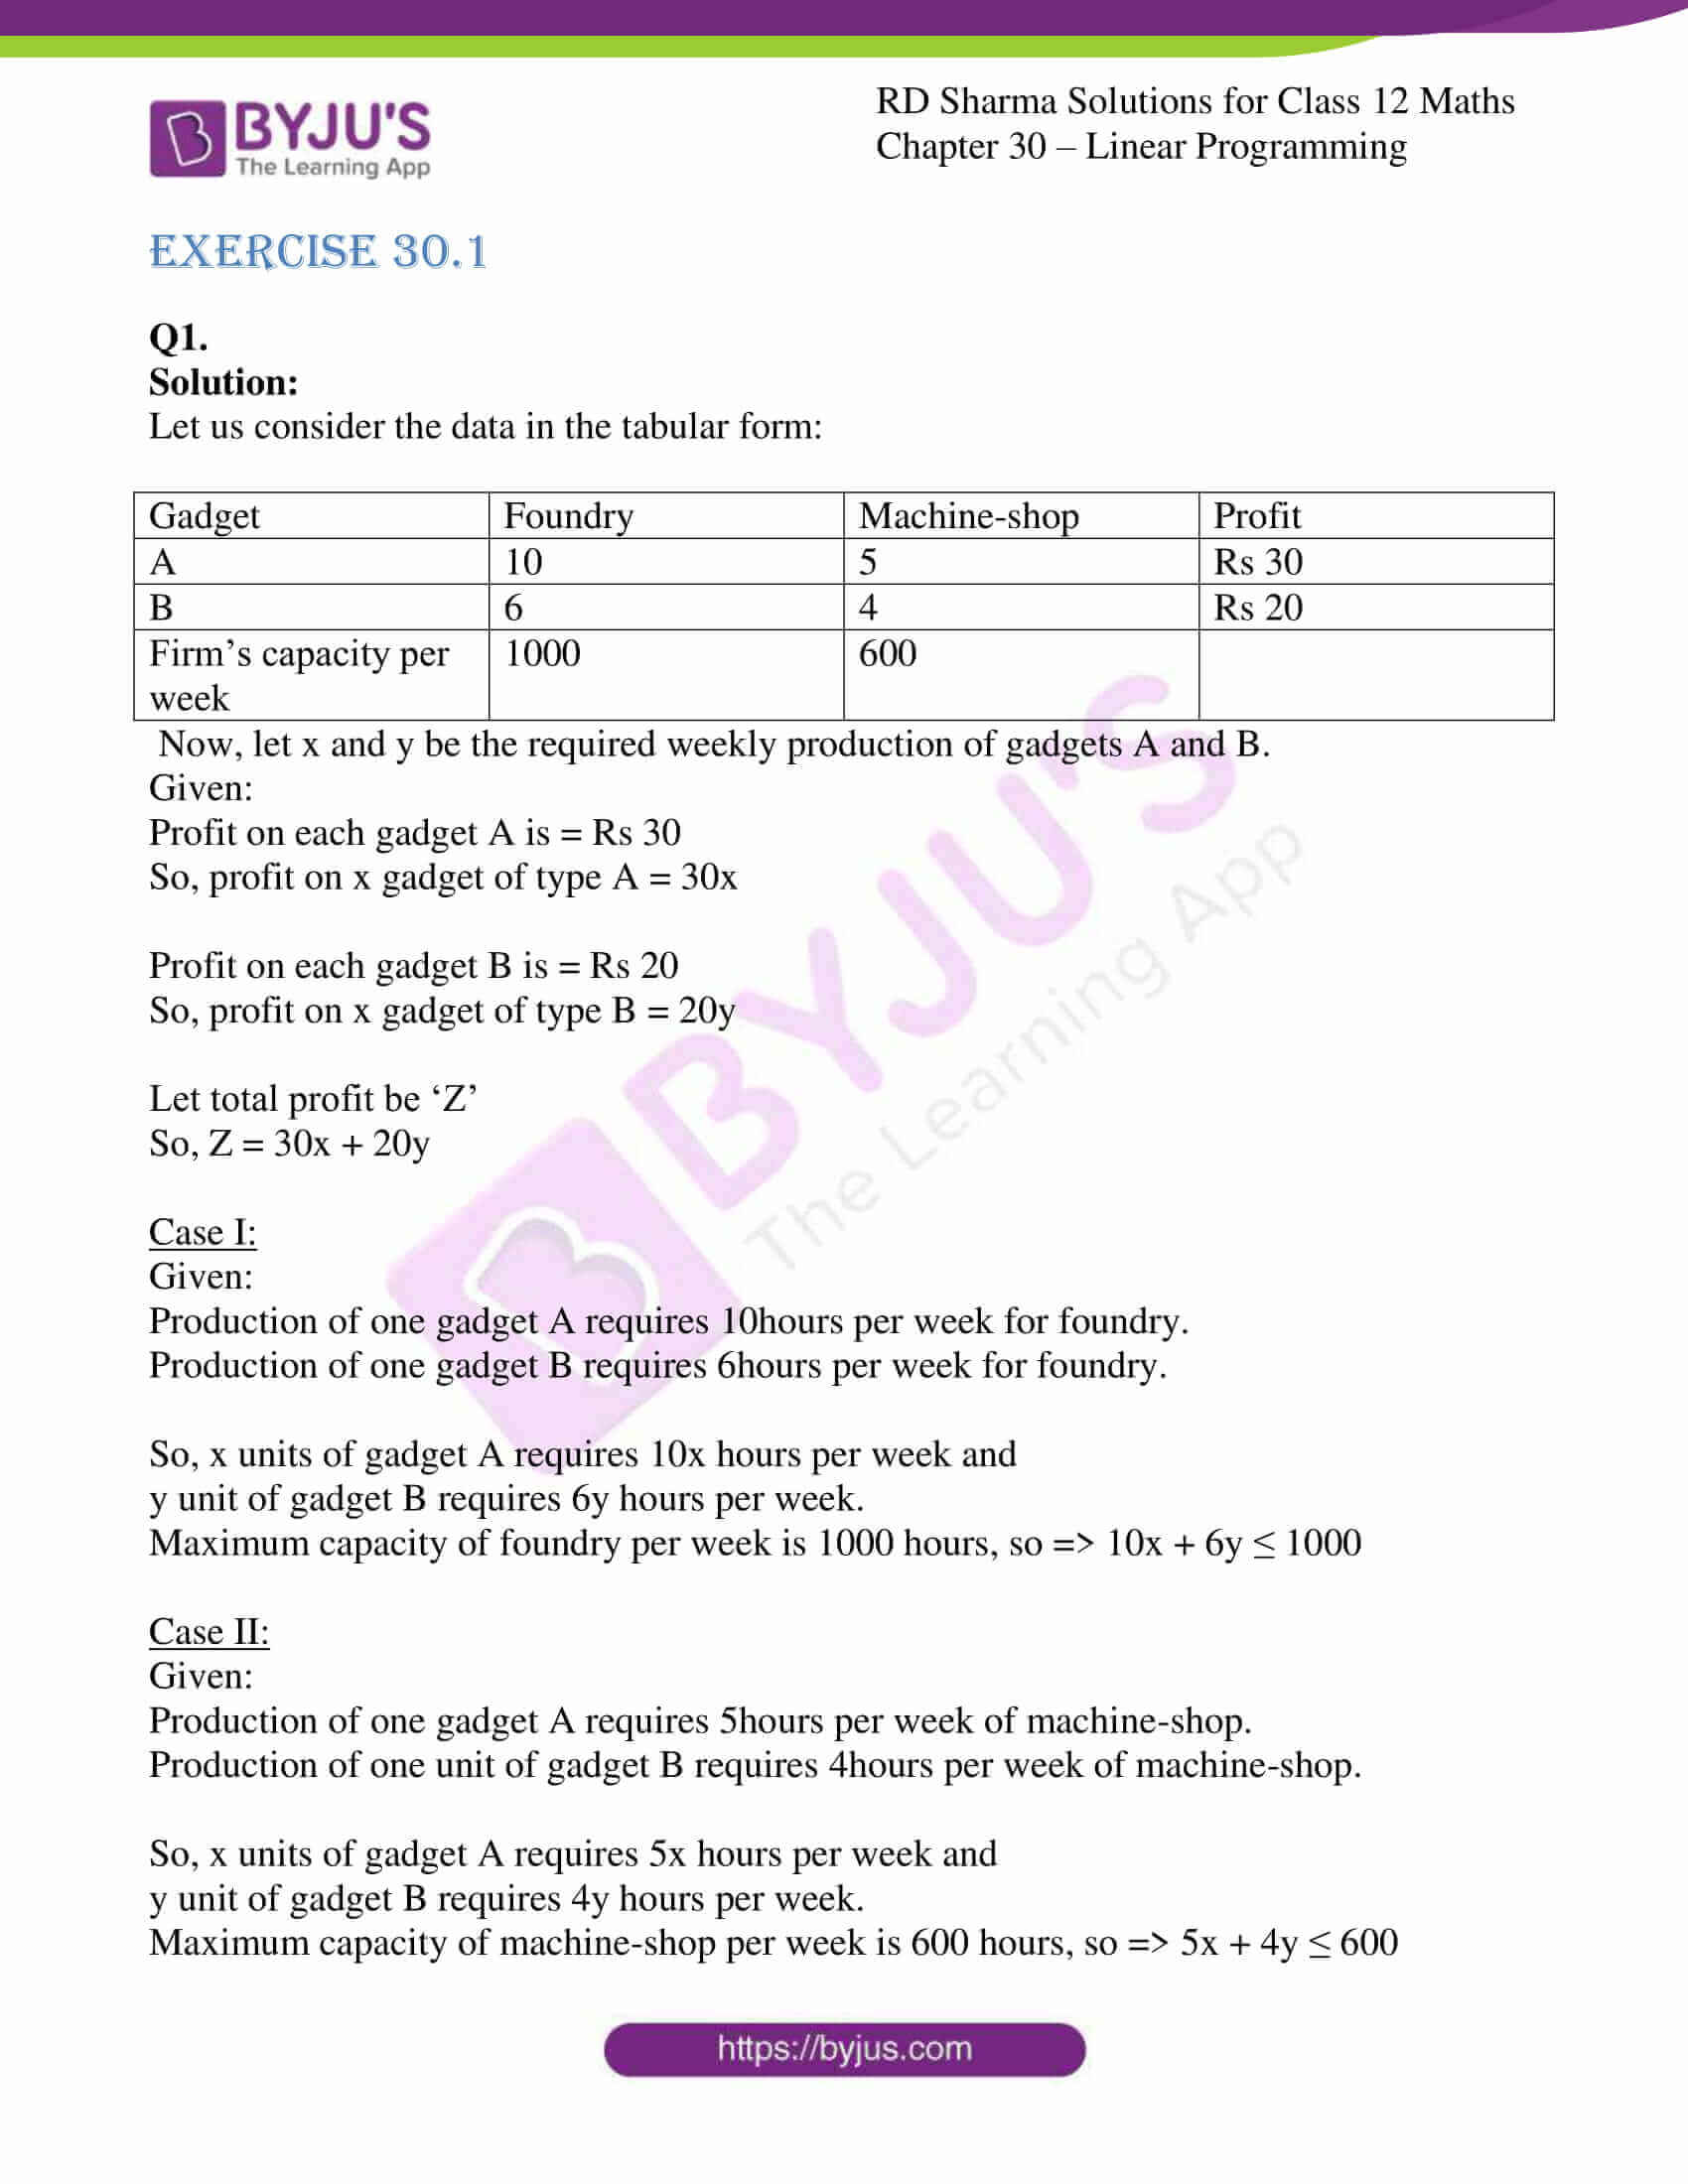 rd sharma solutions for class 12 maths chapter 30 ex 1 1